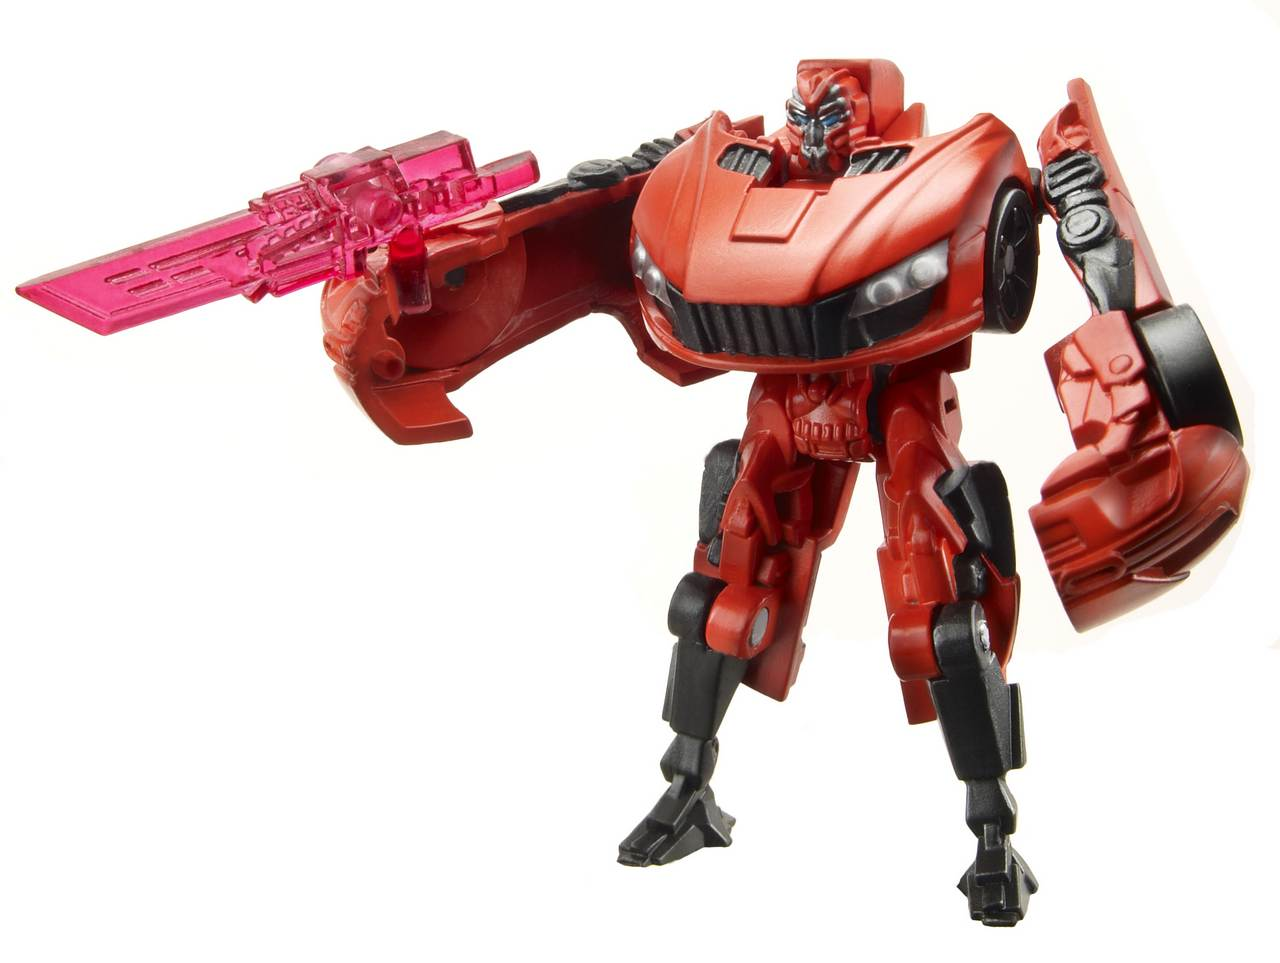 mirage transformers toys tfw2005